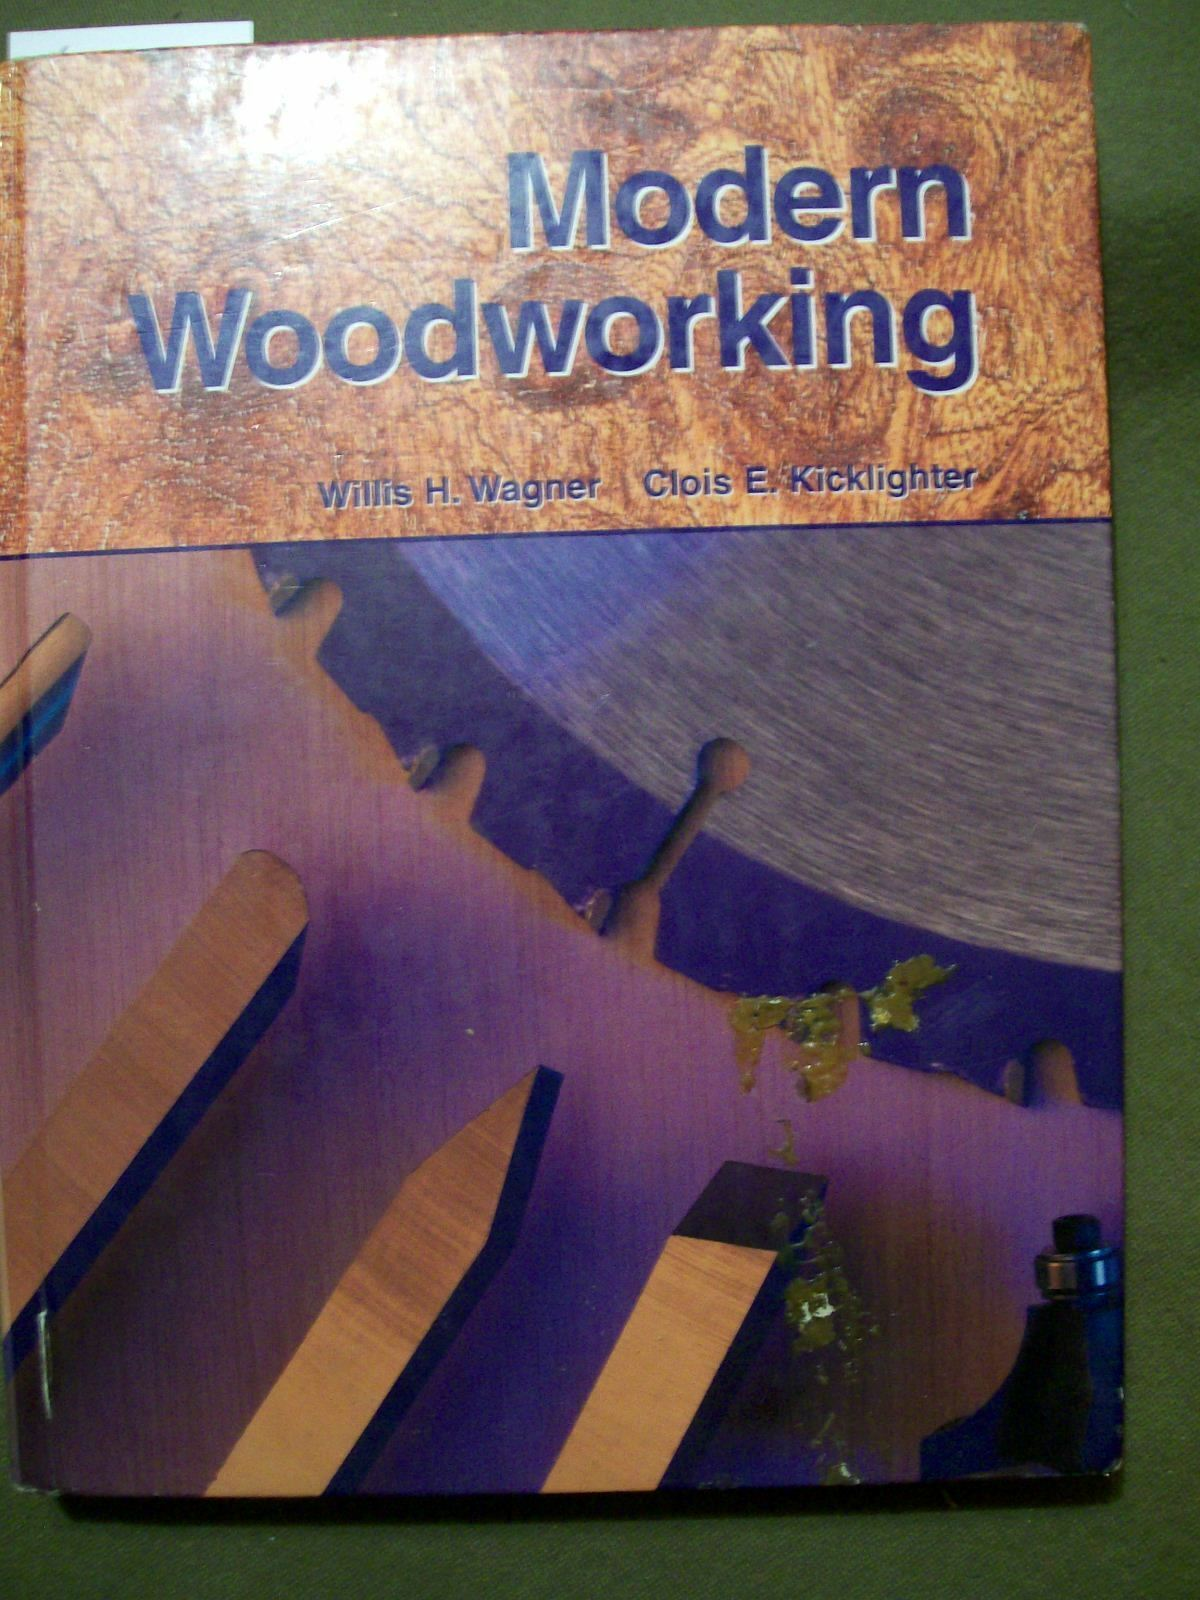 modern woodworking : tools, materials, and processeswillis h. wagner  and clois e. kicklighter (2004, hardcover)